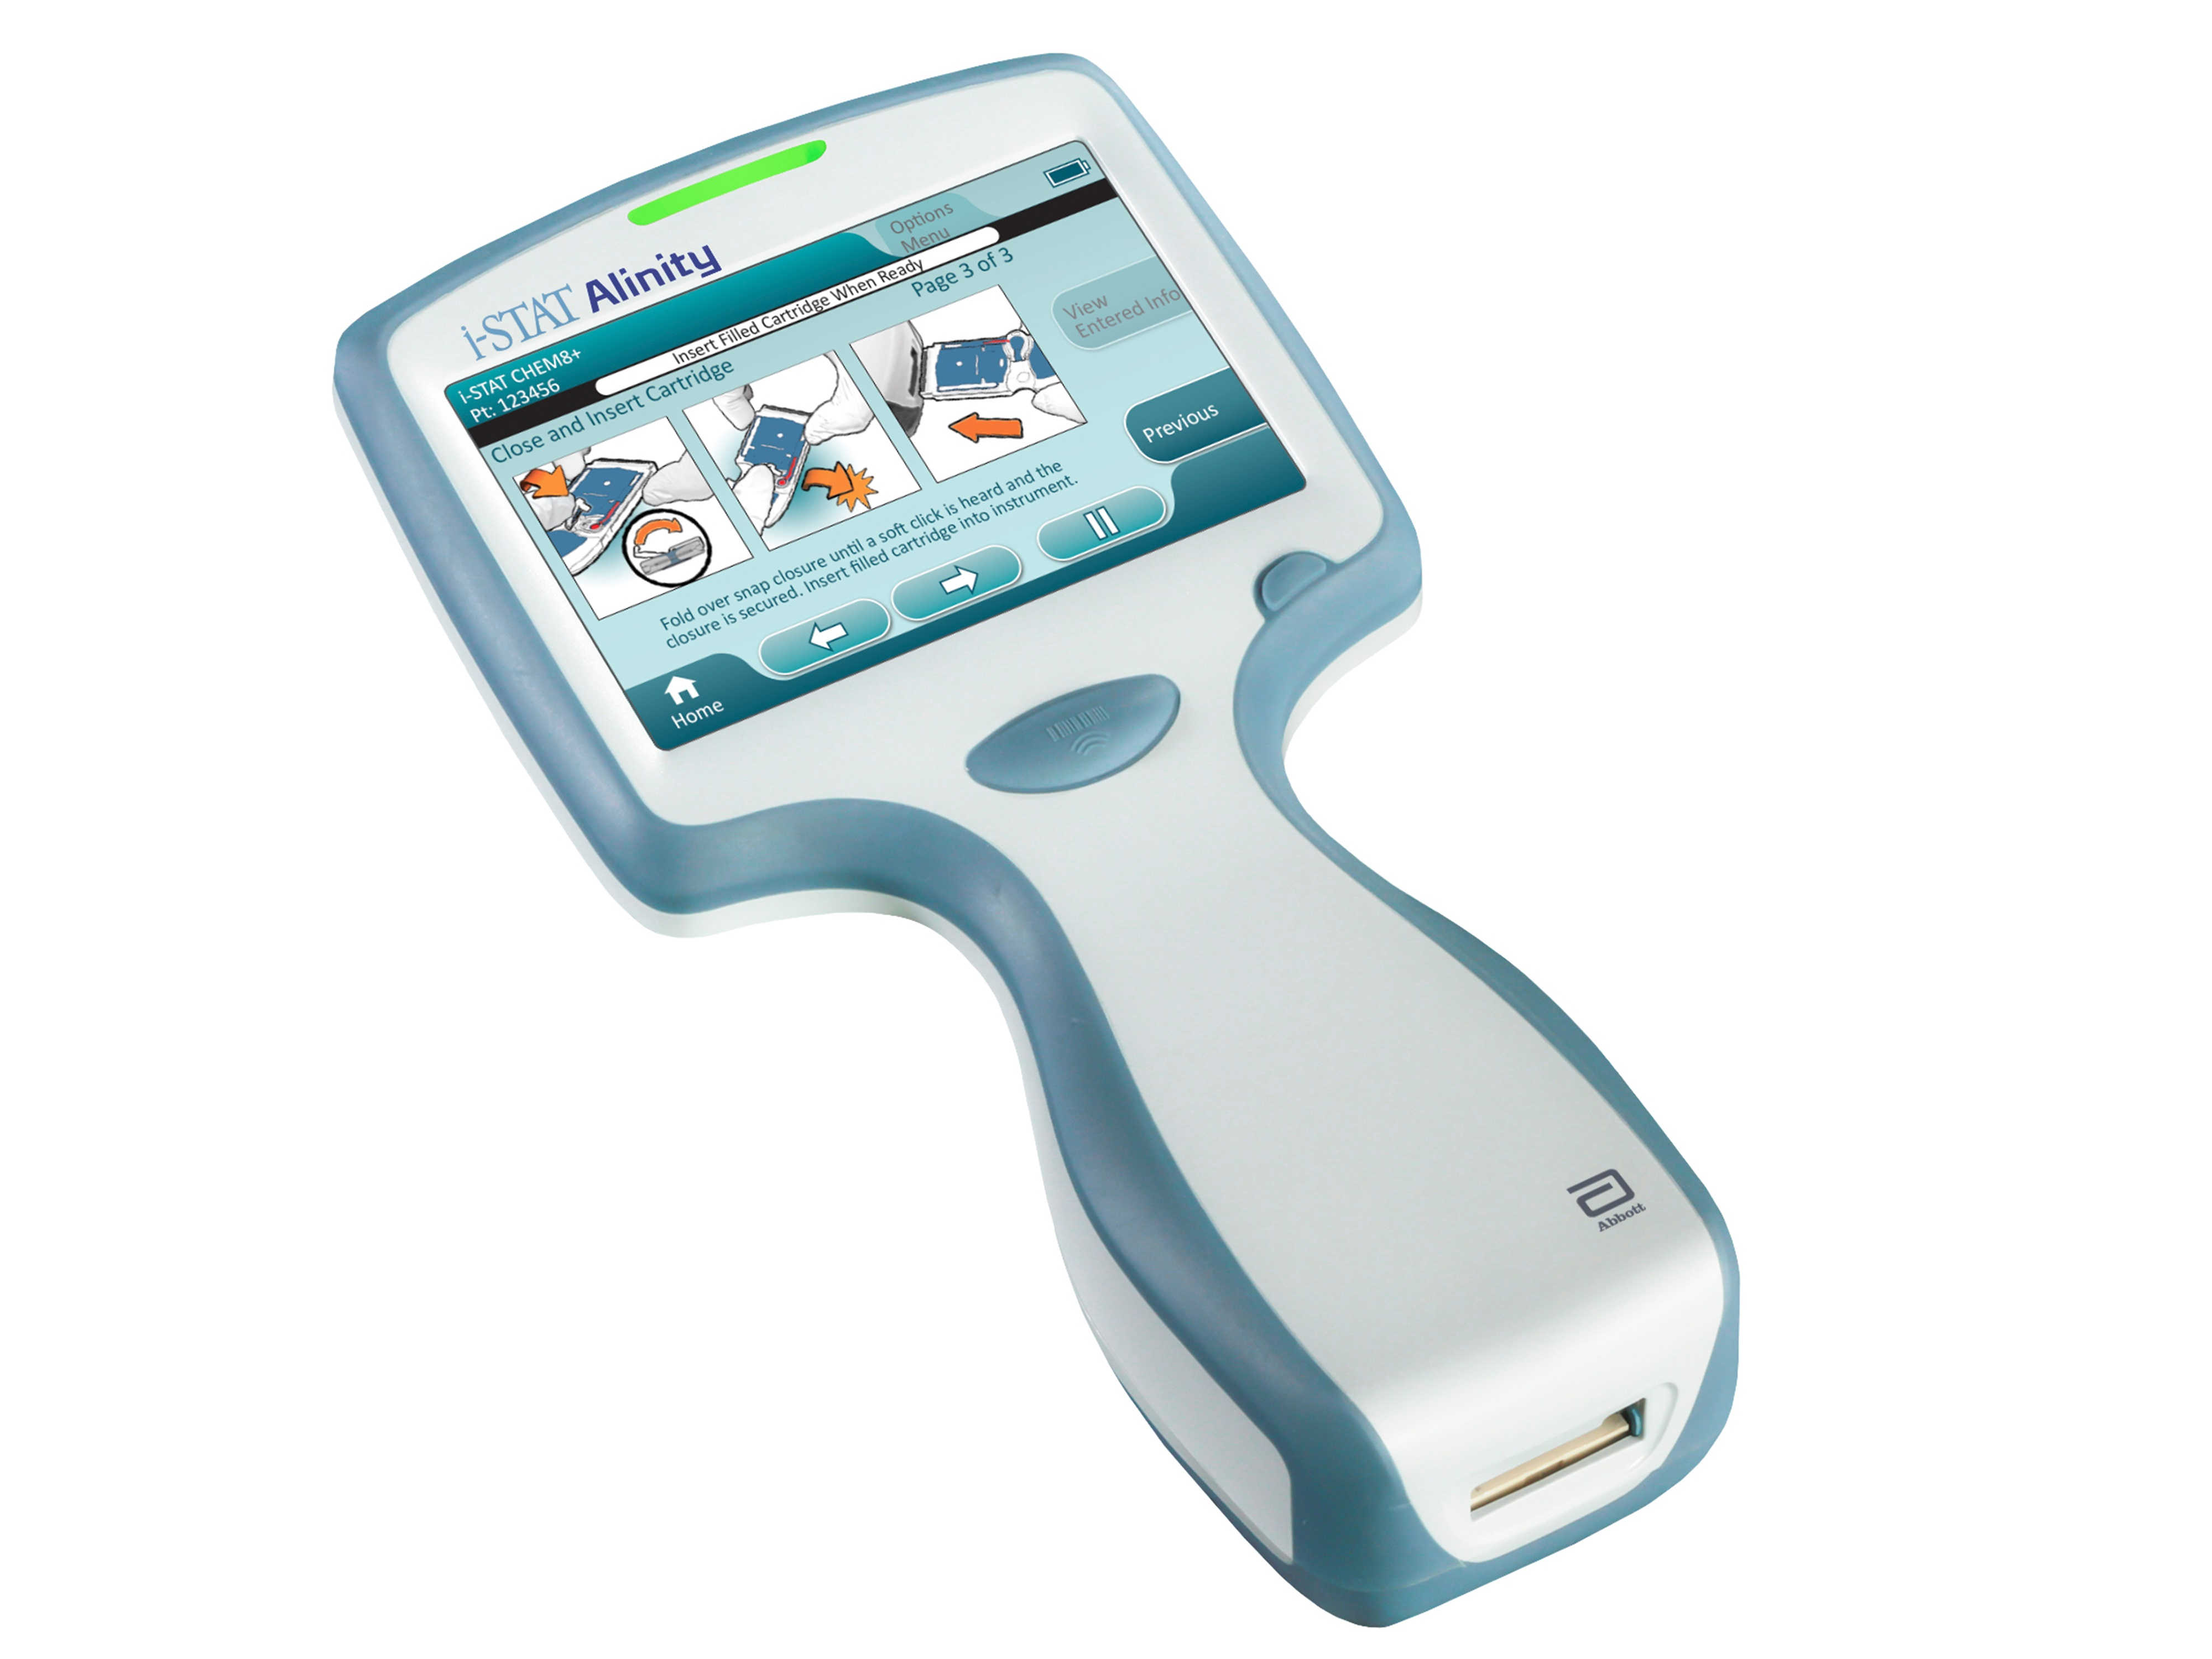 Abbott Announces CE Mark For I STAT Alinity A Pioneering Handheld